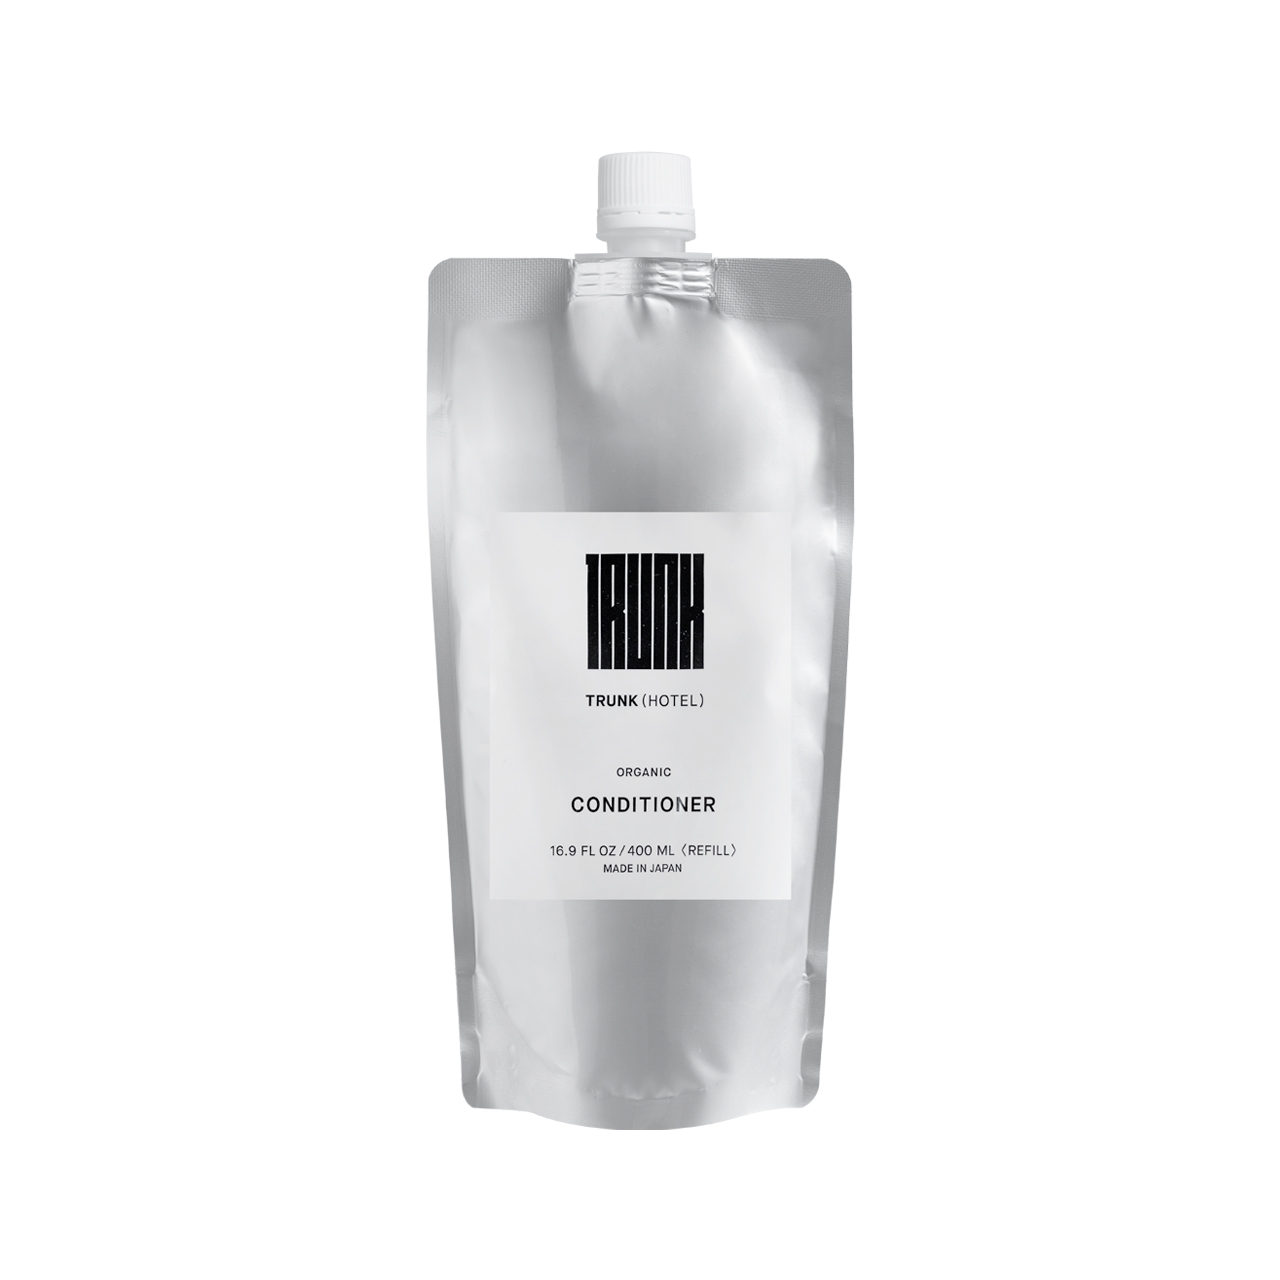 【Refill subscription】 TRUNK Organic Conditioner